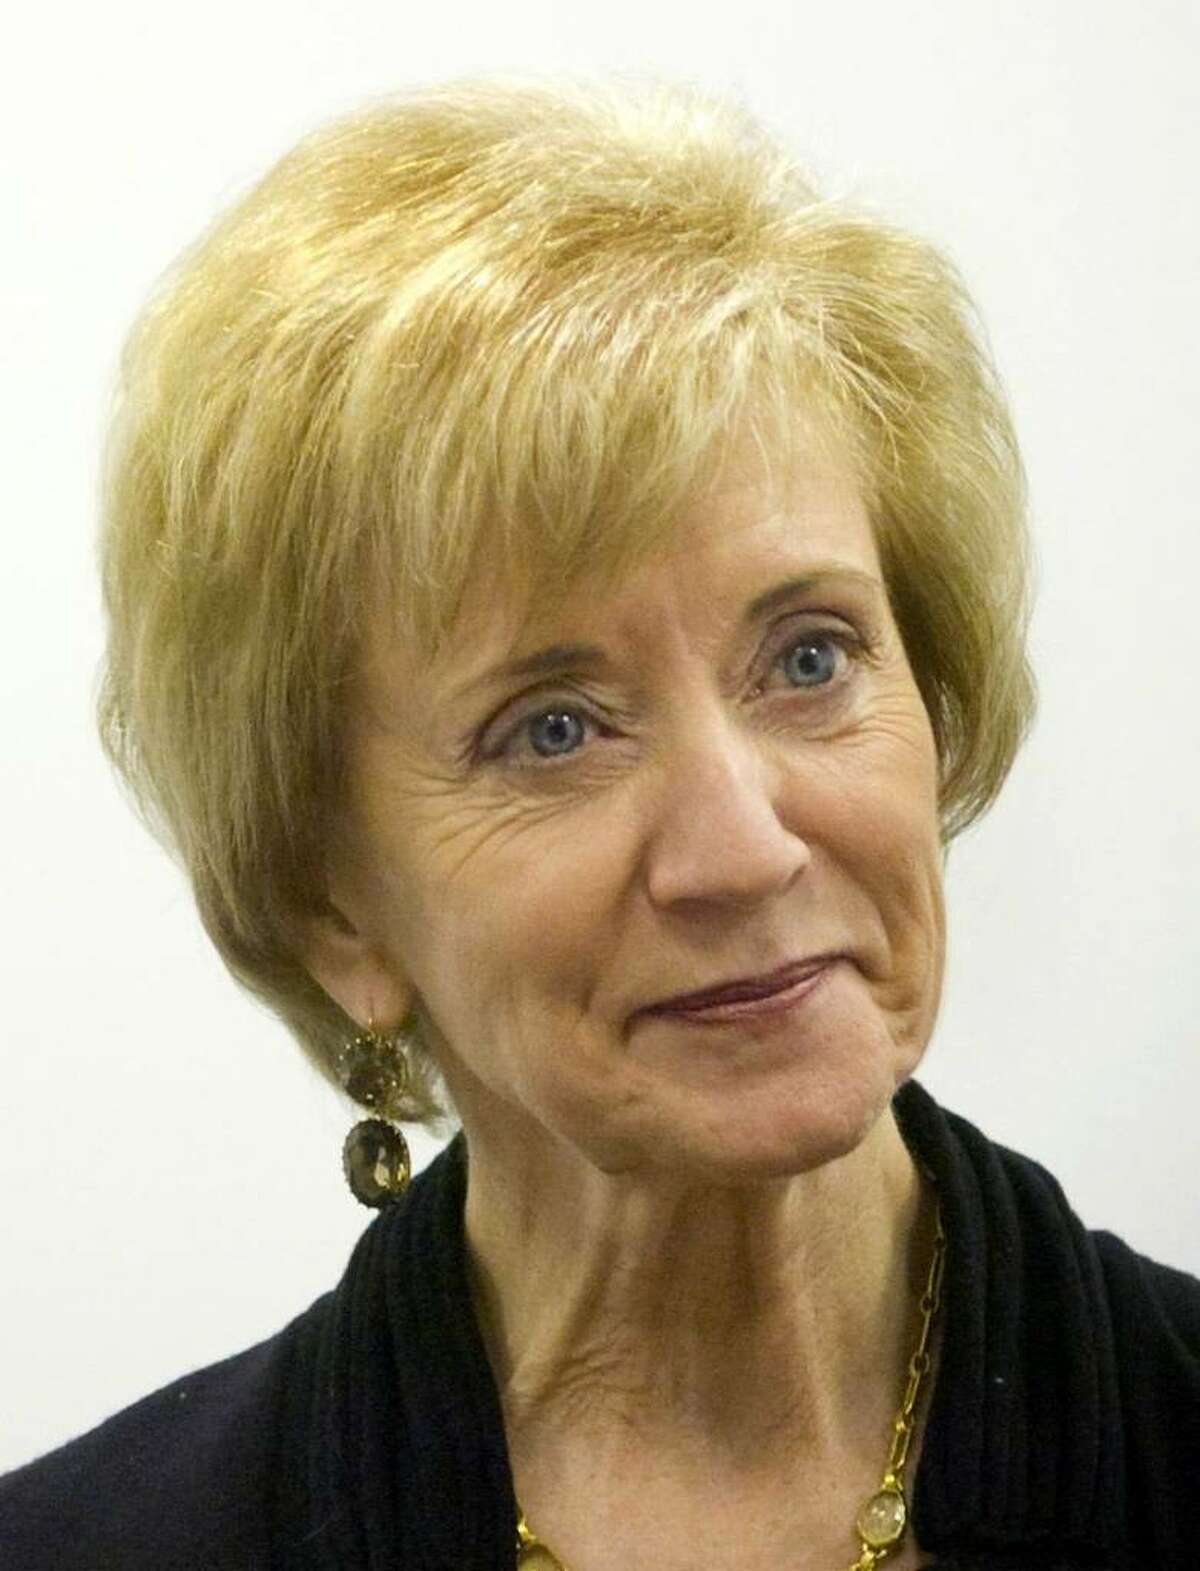 Linda McMahon, former CEO of World Wrestling Entertainment and current Republican candidate for U.S. Senate.